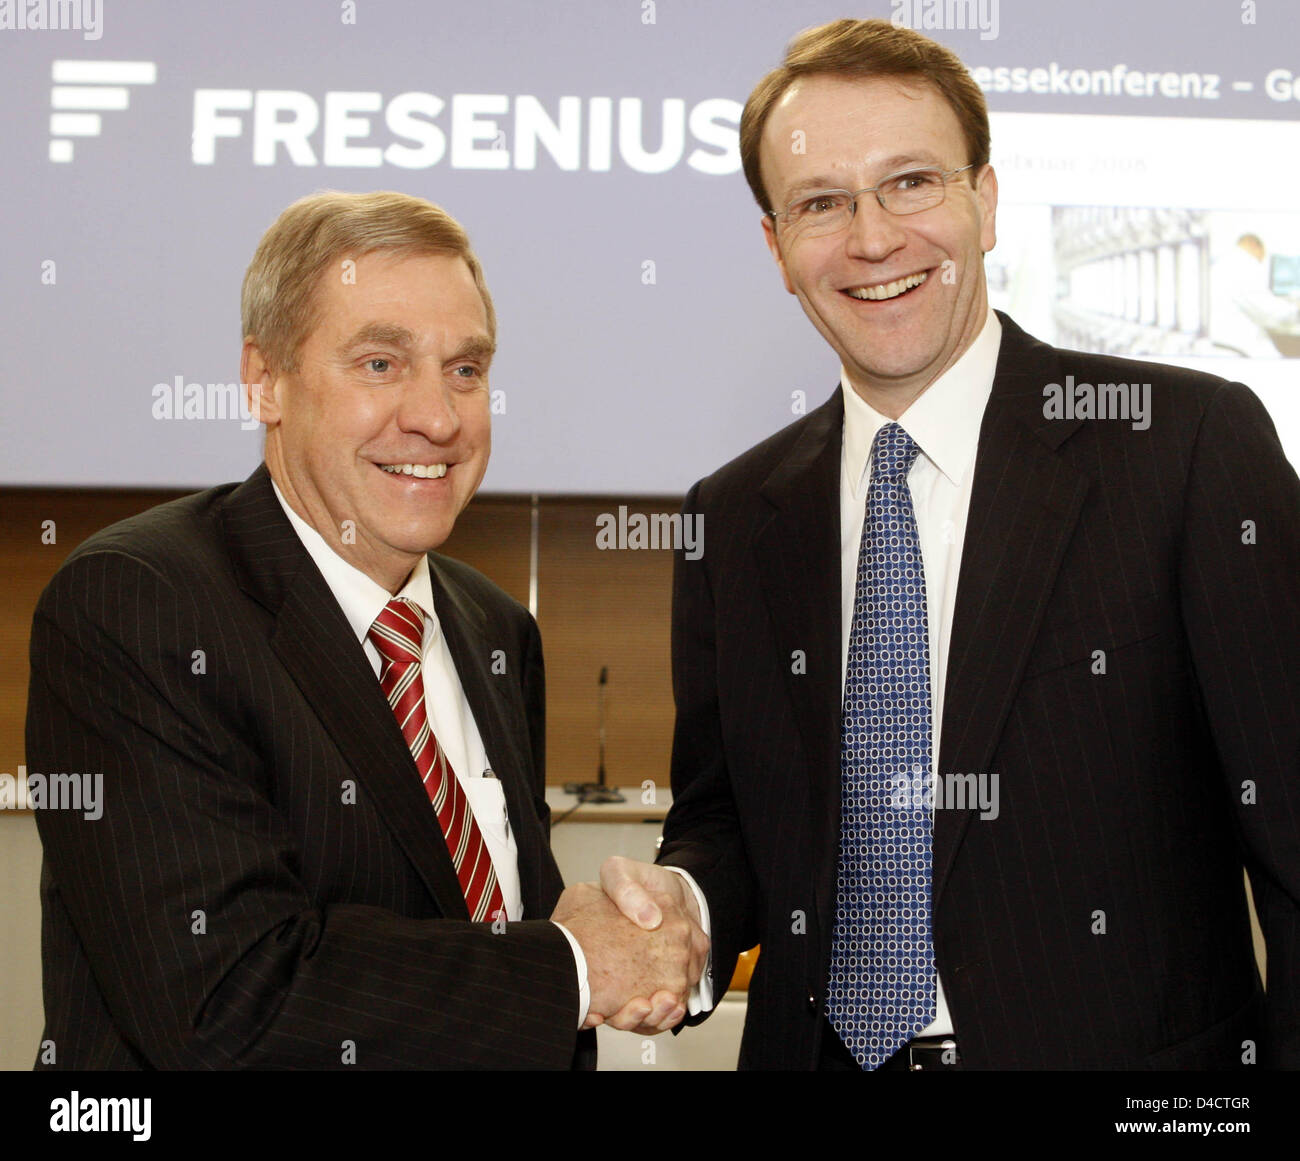 The CEO of Fresenius Medical Care, Ben Lipps (L) and the CEO of parent company Fresenius SE, Ulf Schneider are pictured - Stock Image